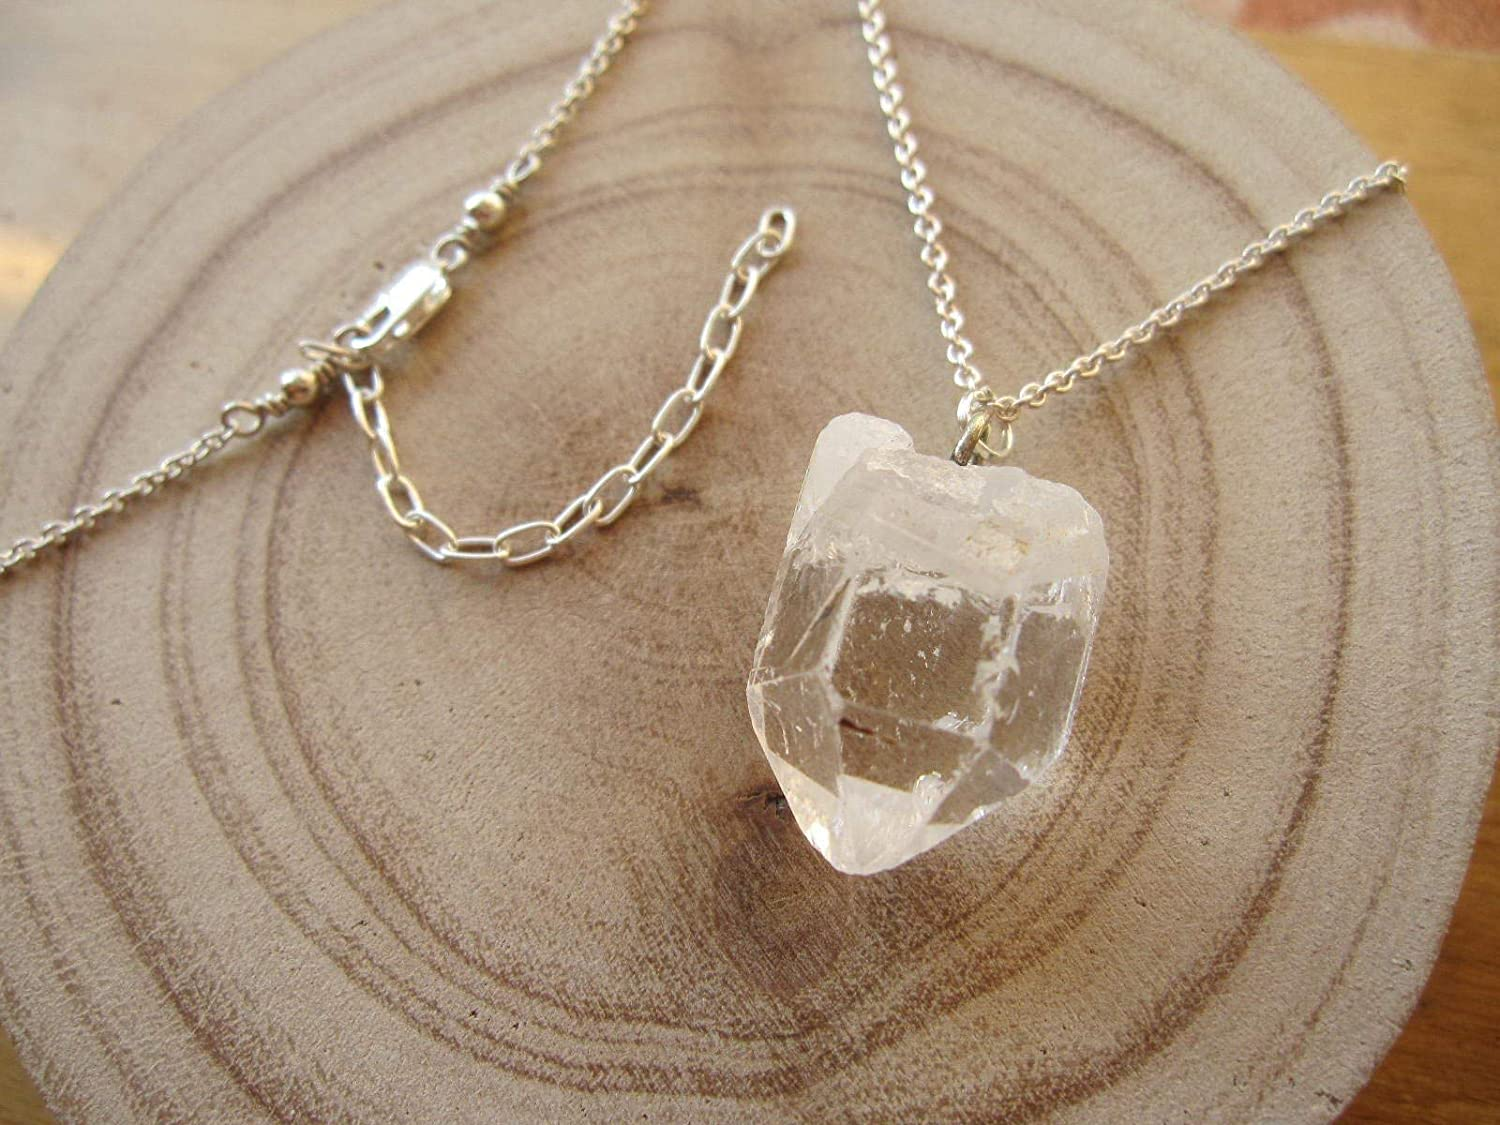 Circle Necklace Silver Chain Necklace Gothic Necklace Pendant Necklace Sterling Silver Curb Link Chain Raw Crystal Quartz Necklace